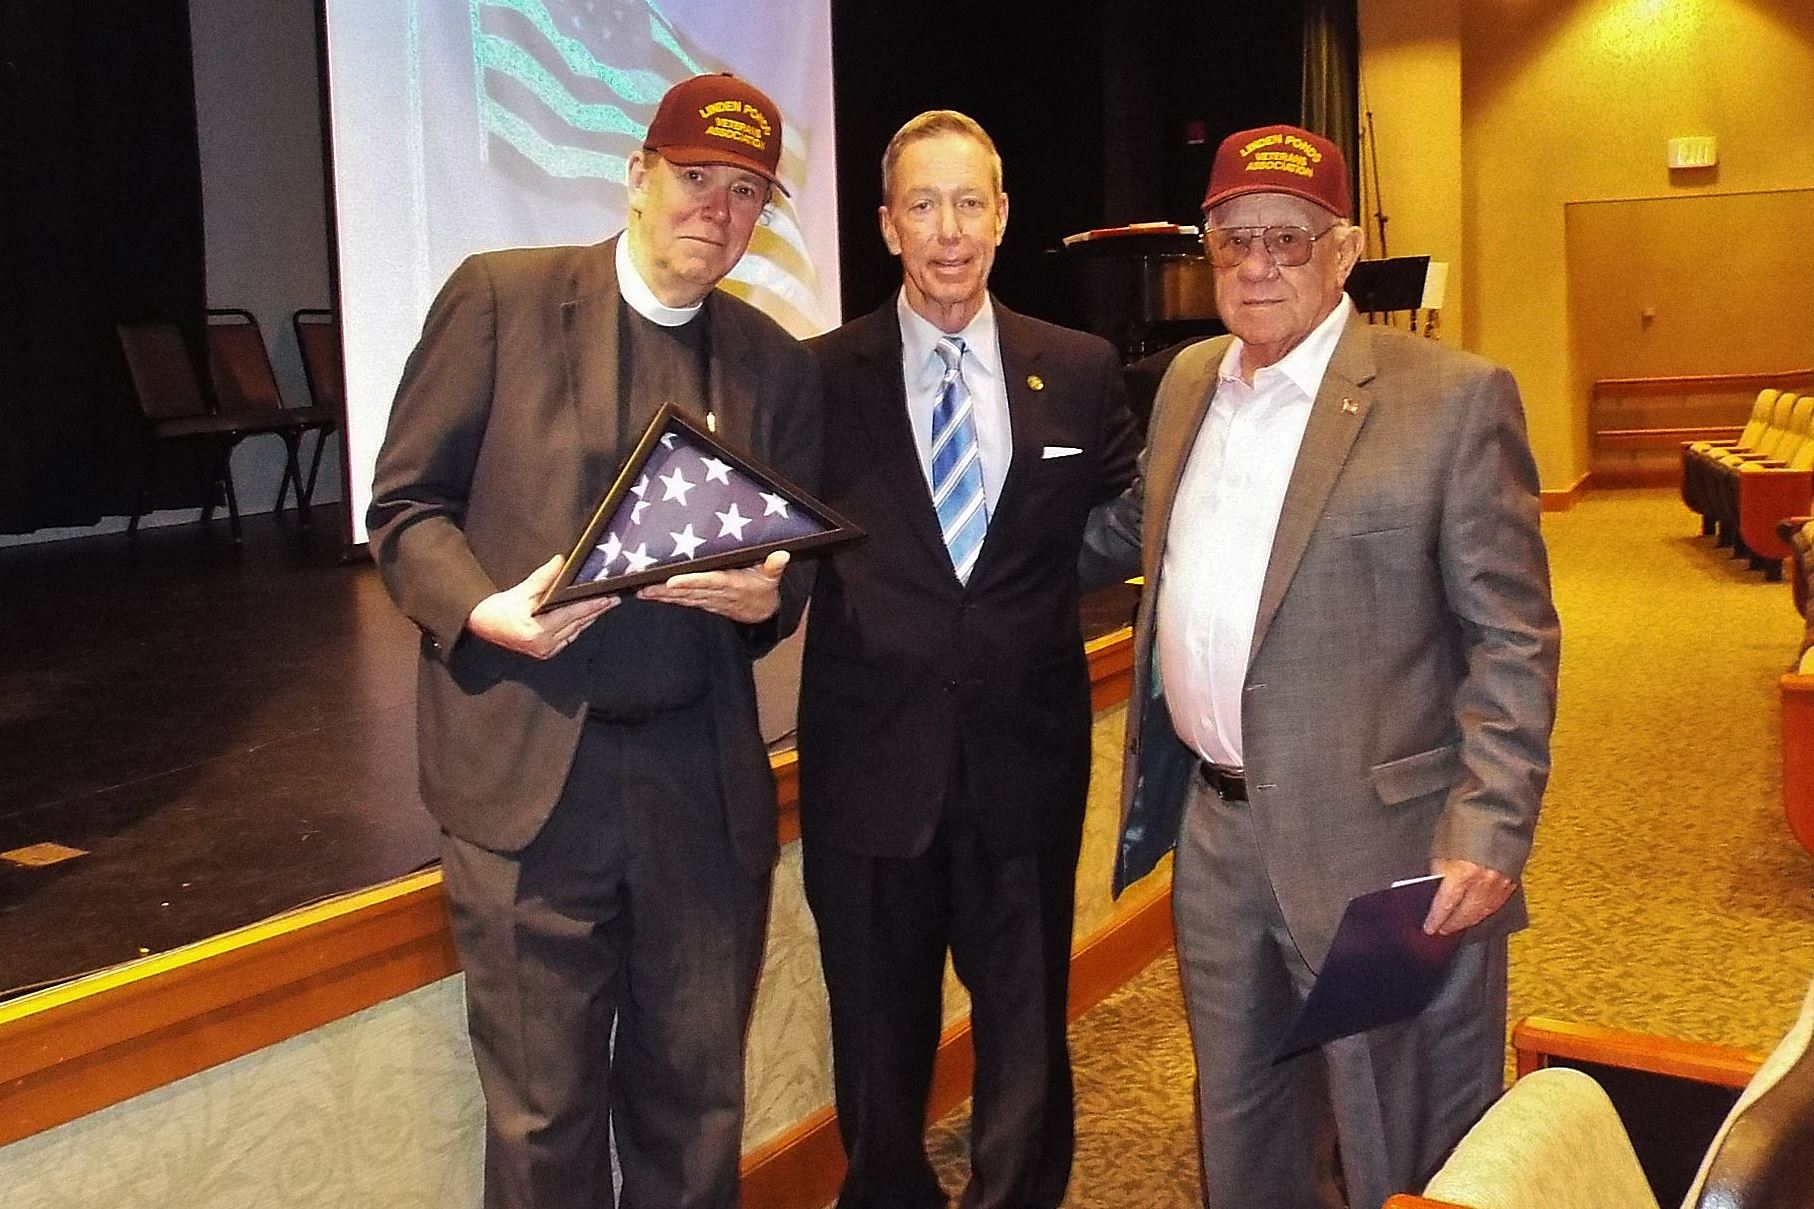 Pastoral Minister of LP and John Pinto-President of LP Veterans accept a flag flown over the Capital, Washington, DC from Congressman Stephen Lynch.